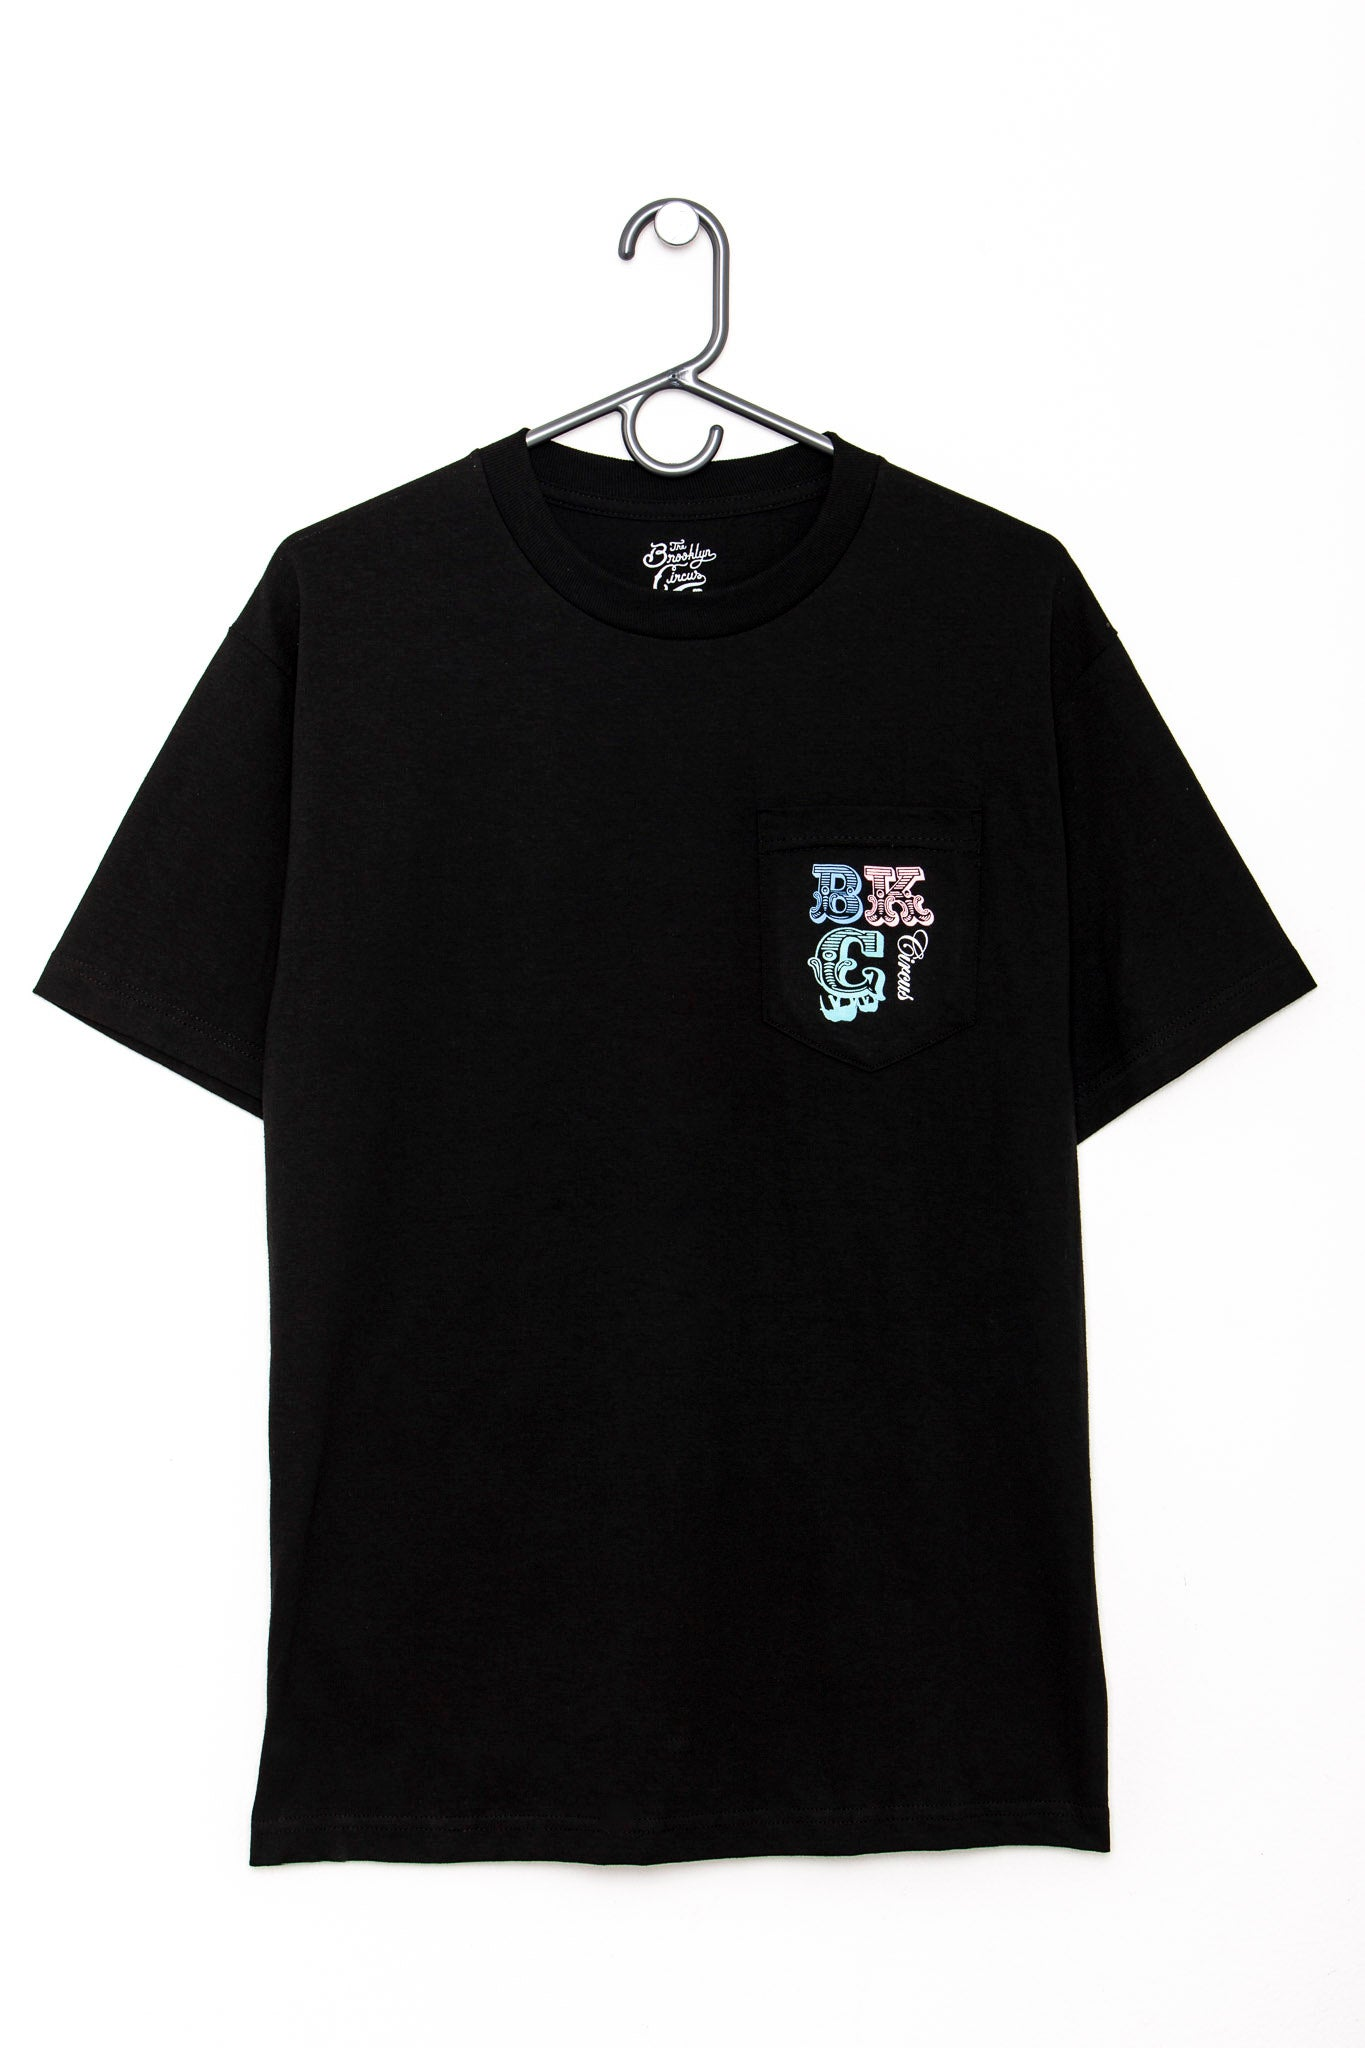 "BKc ""Pocket Blocks"" Tee"